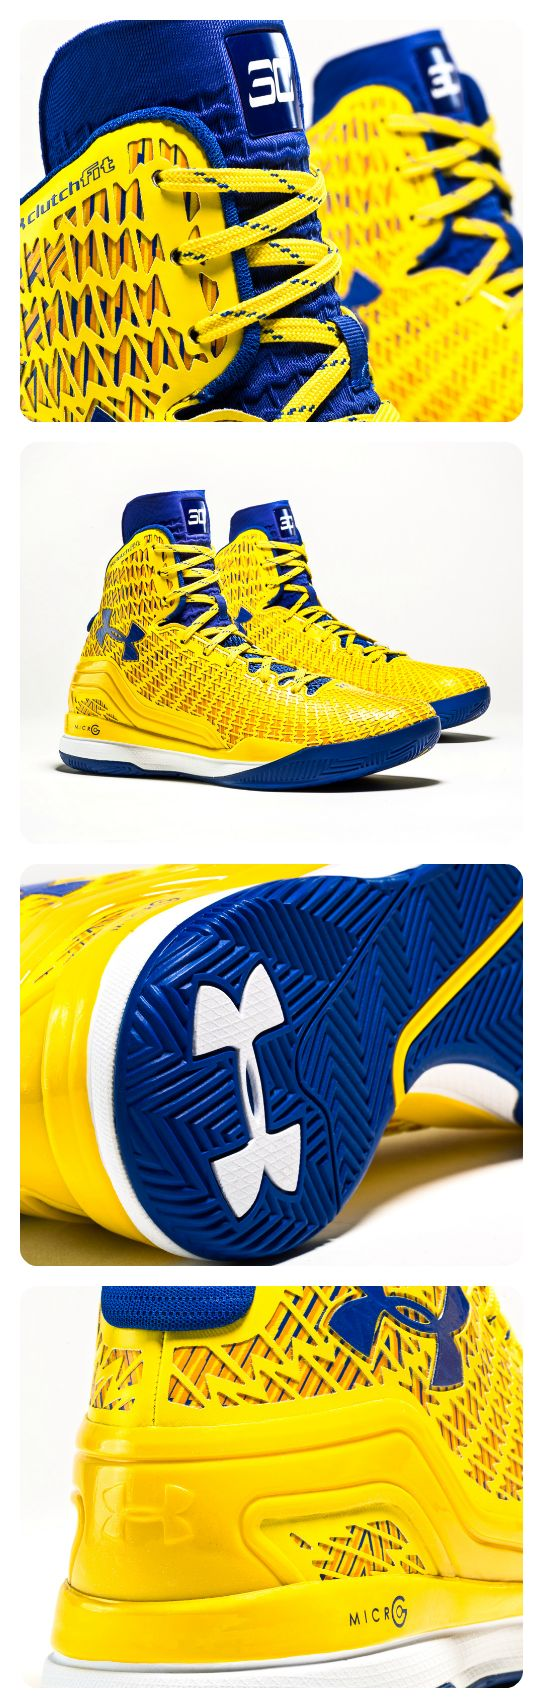 Clutch like Golden States sharp-shooting point guard ClutchFit Drive Stephen Curry PE.